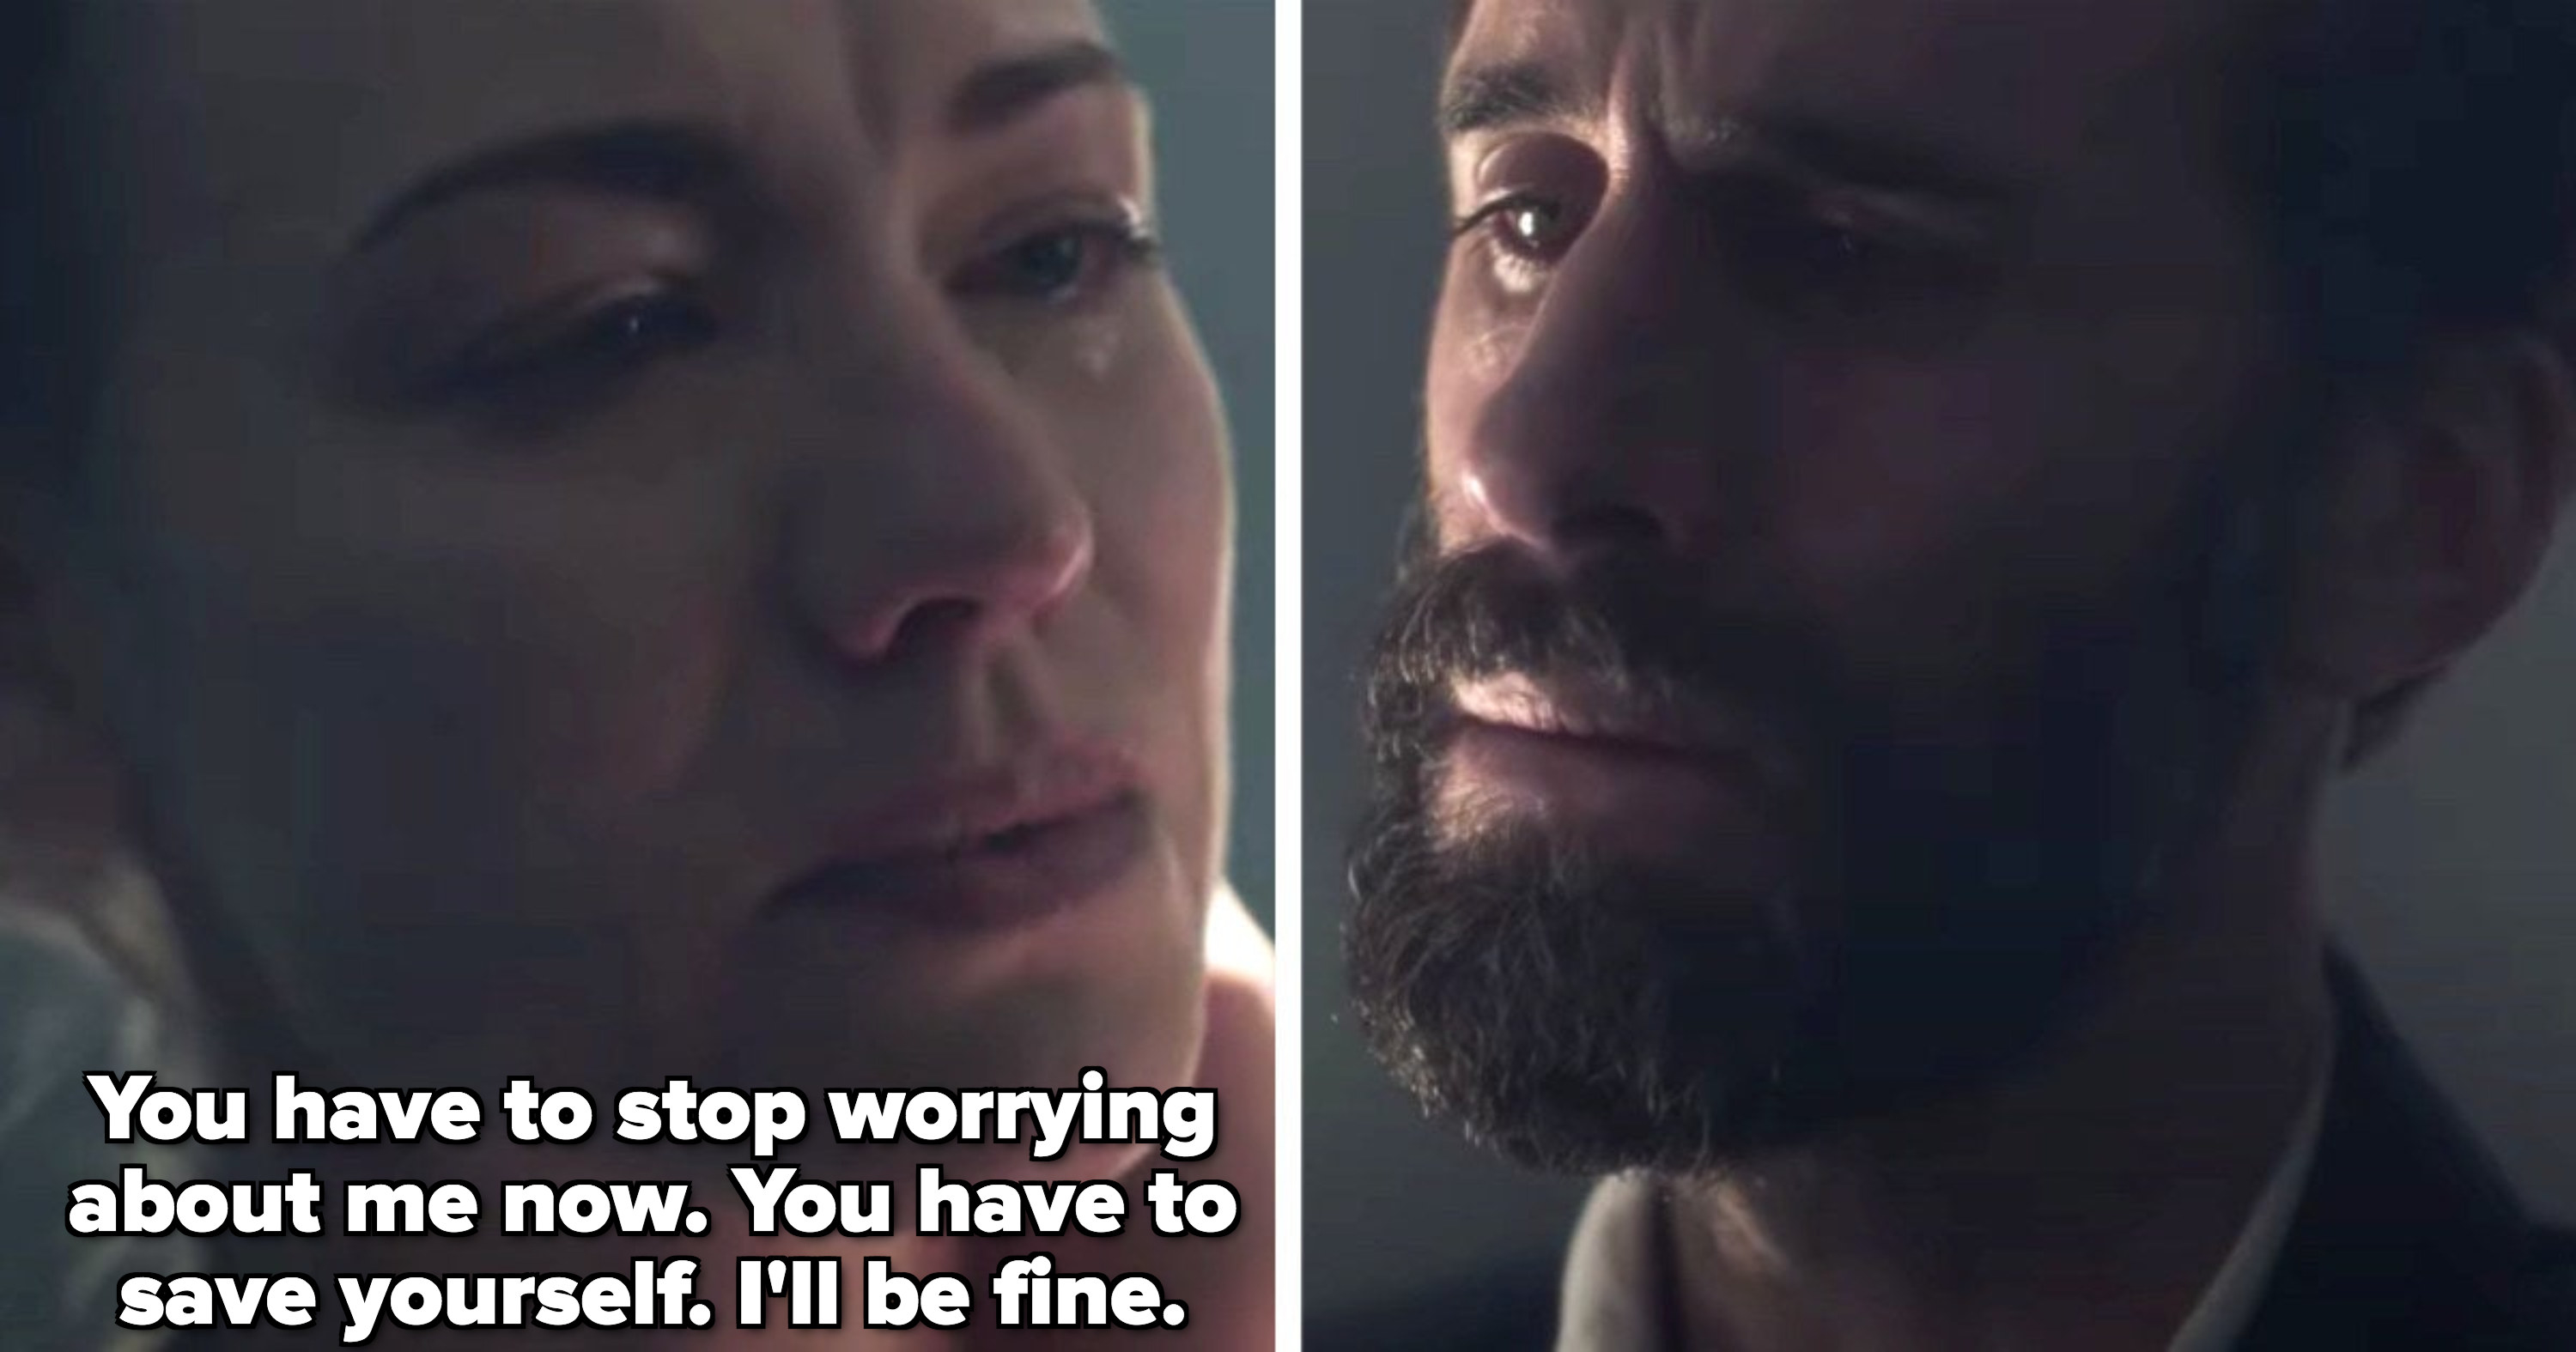 Serena telling Fred to stop worrying about her because she'll be fine